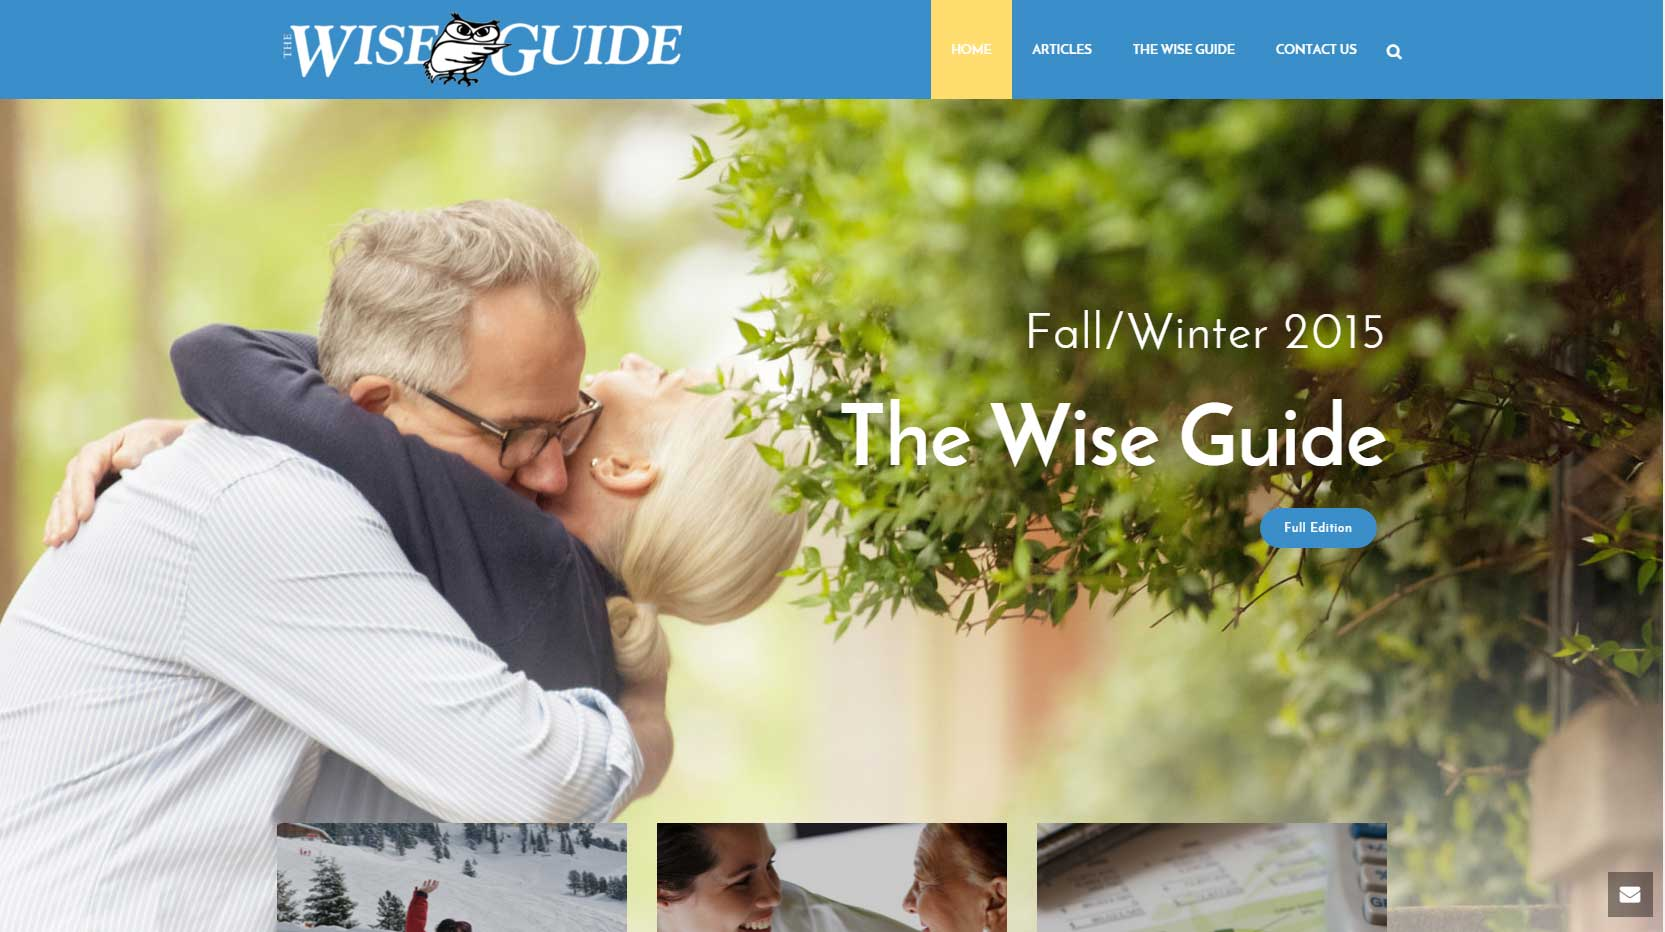 thewiseguideonline.com